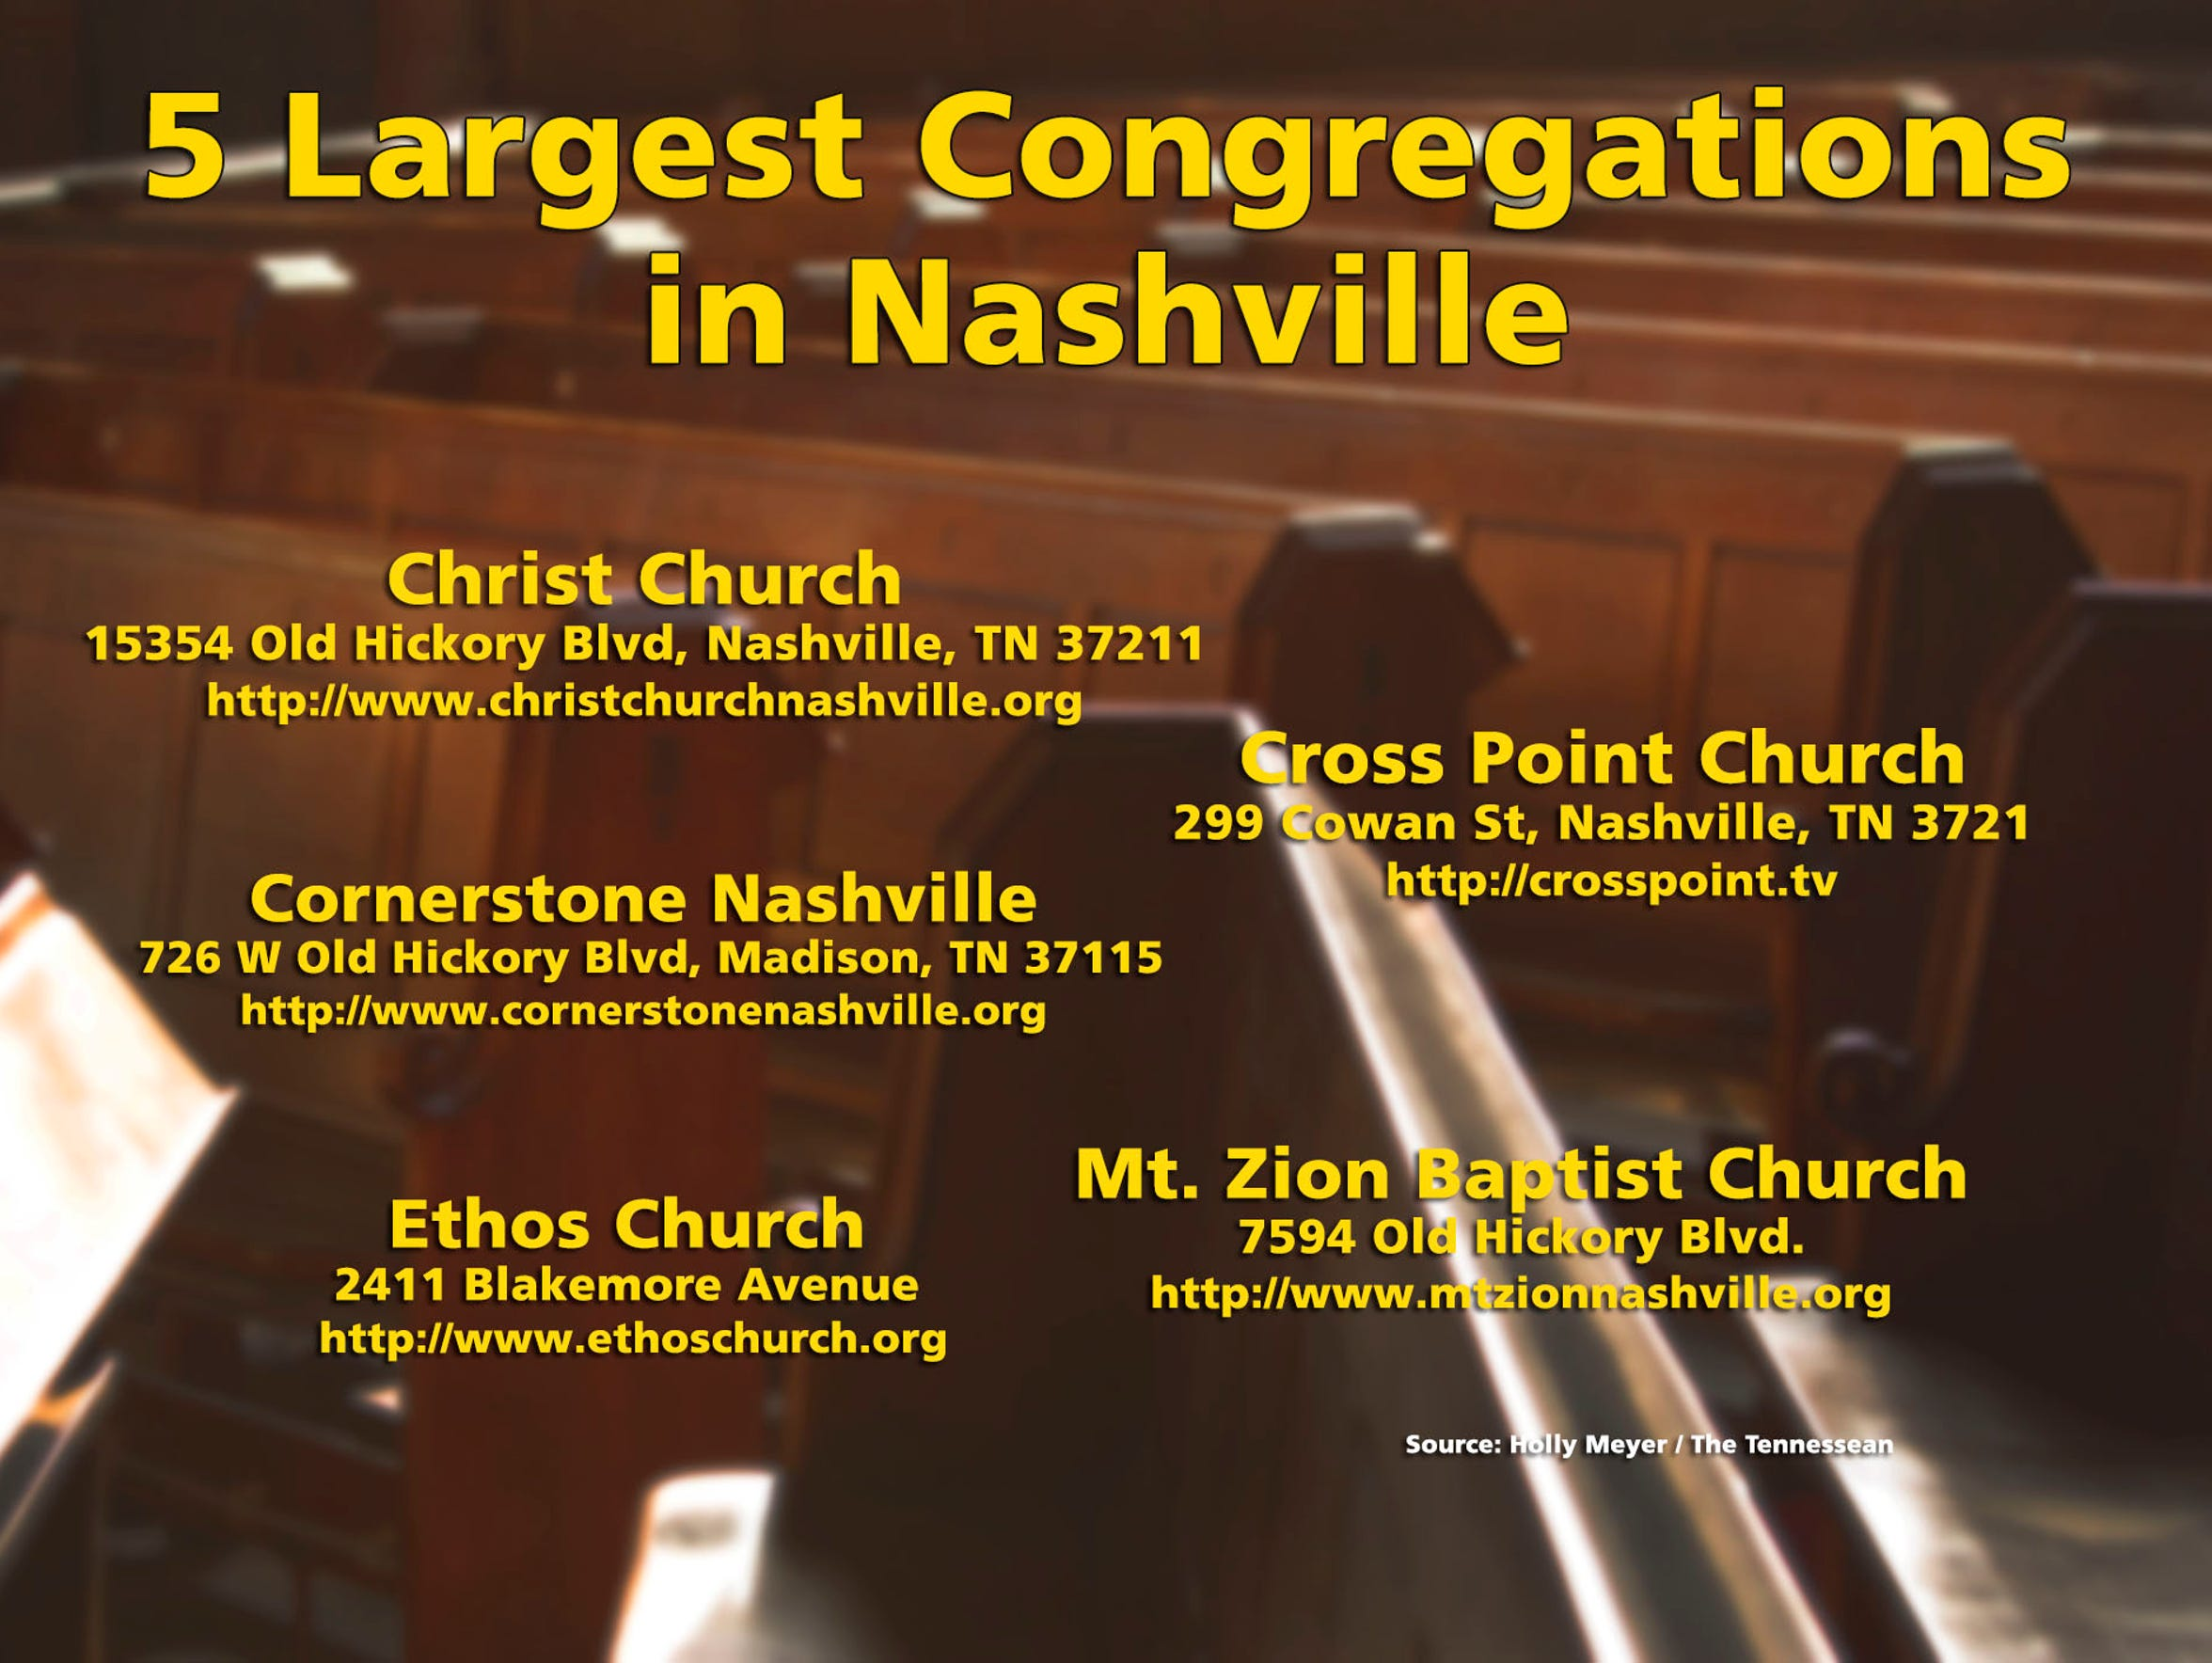 A look at the top 5 biggest congregations in Nashville,